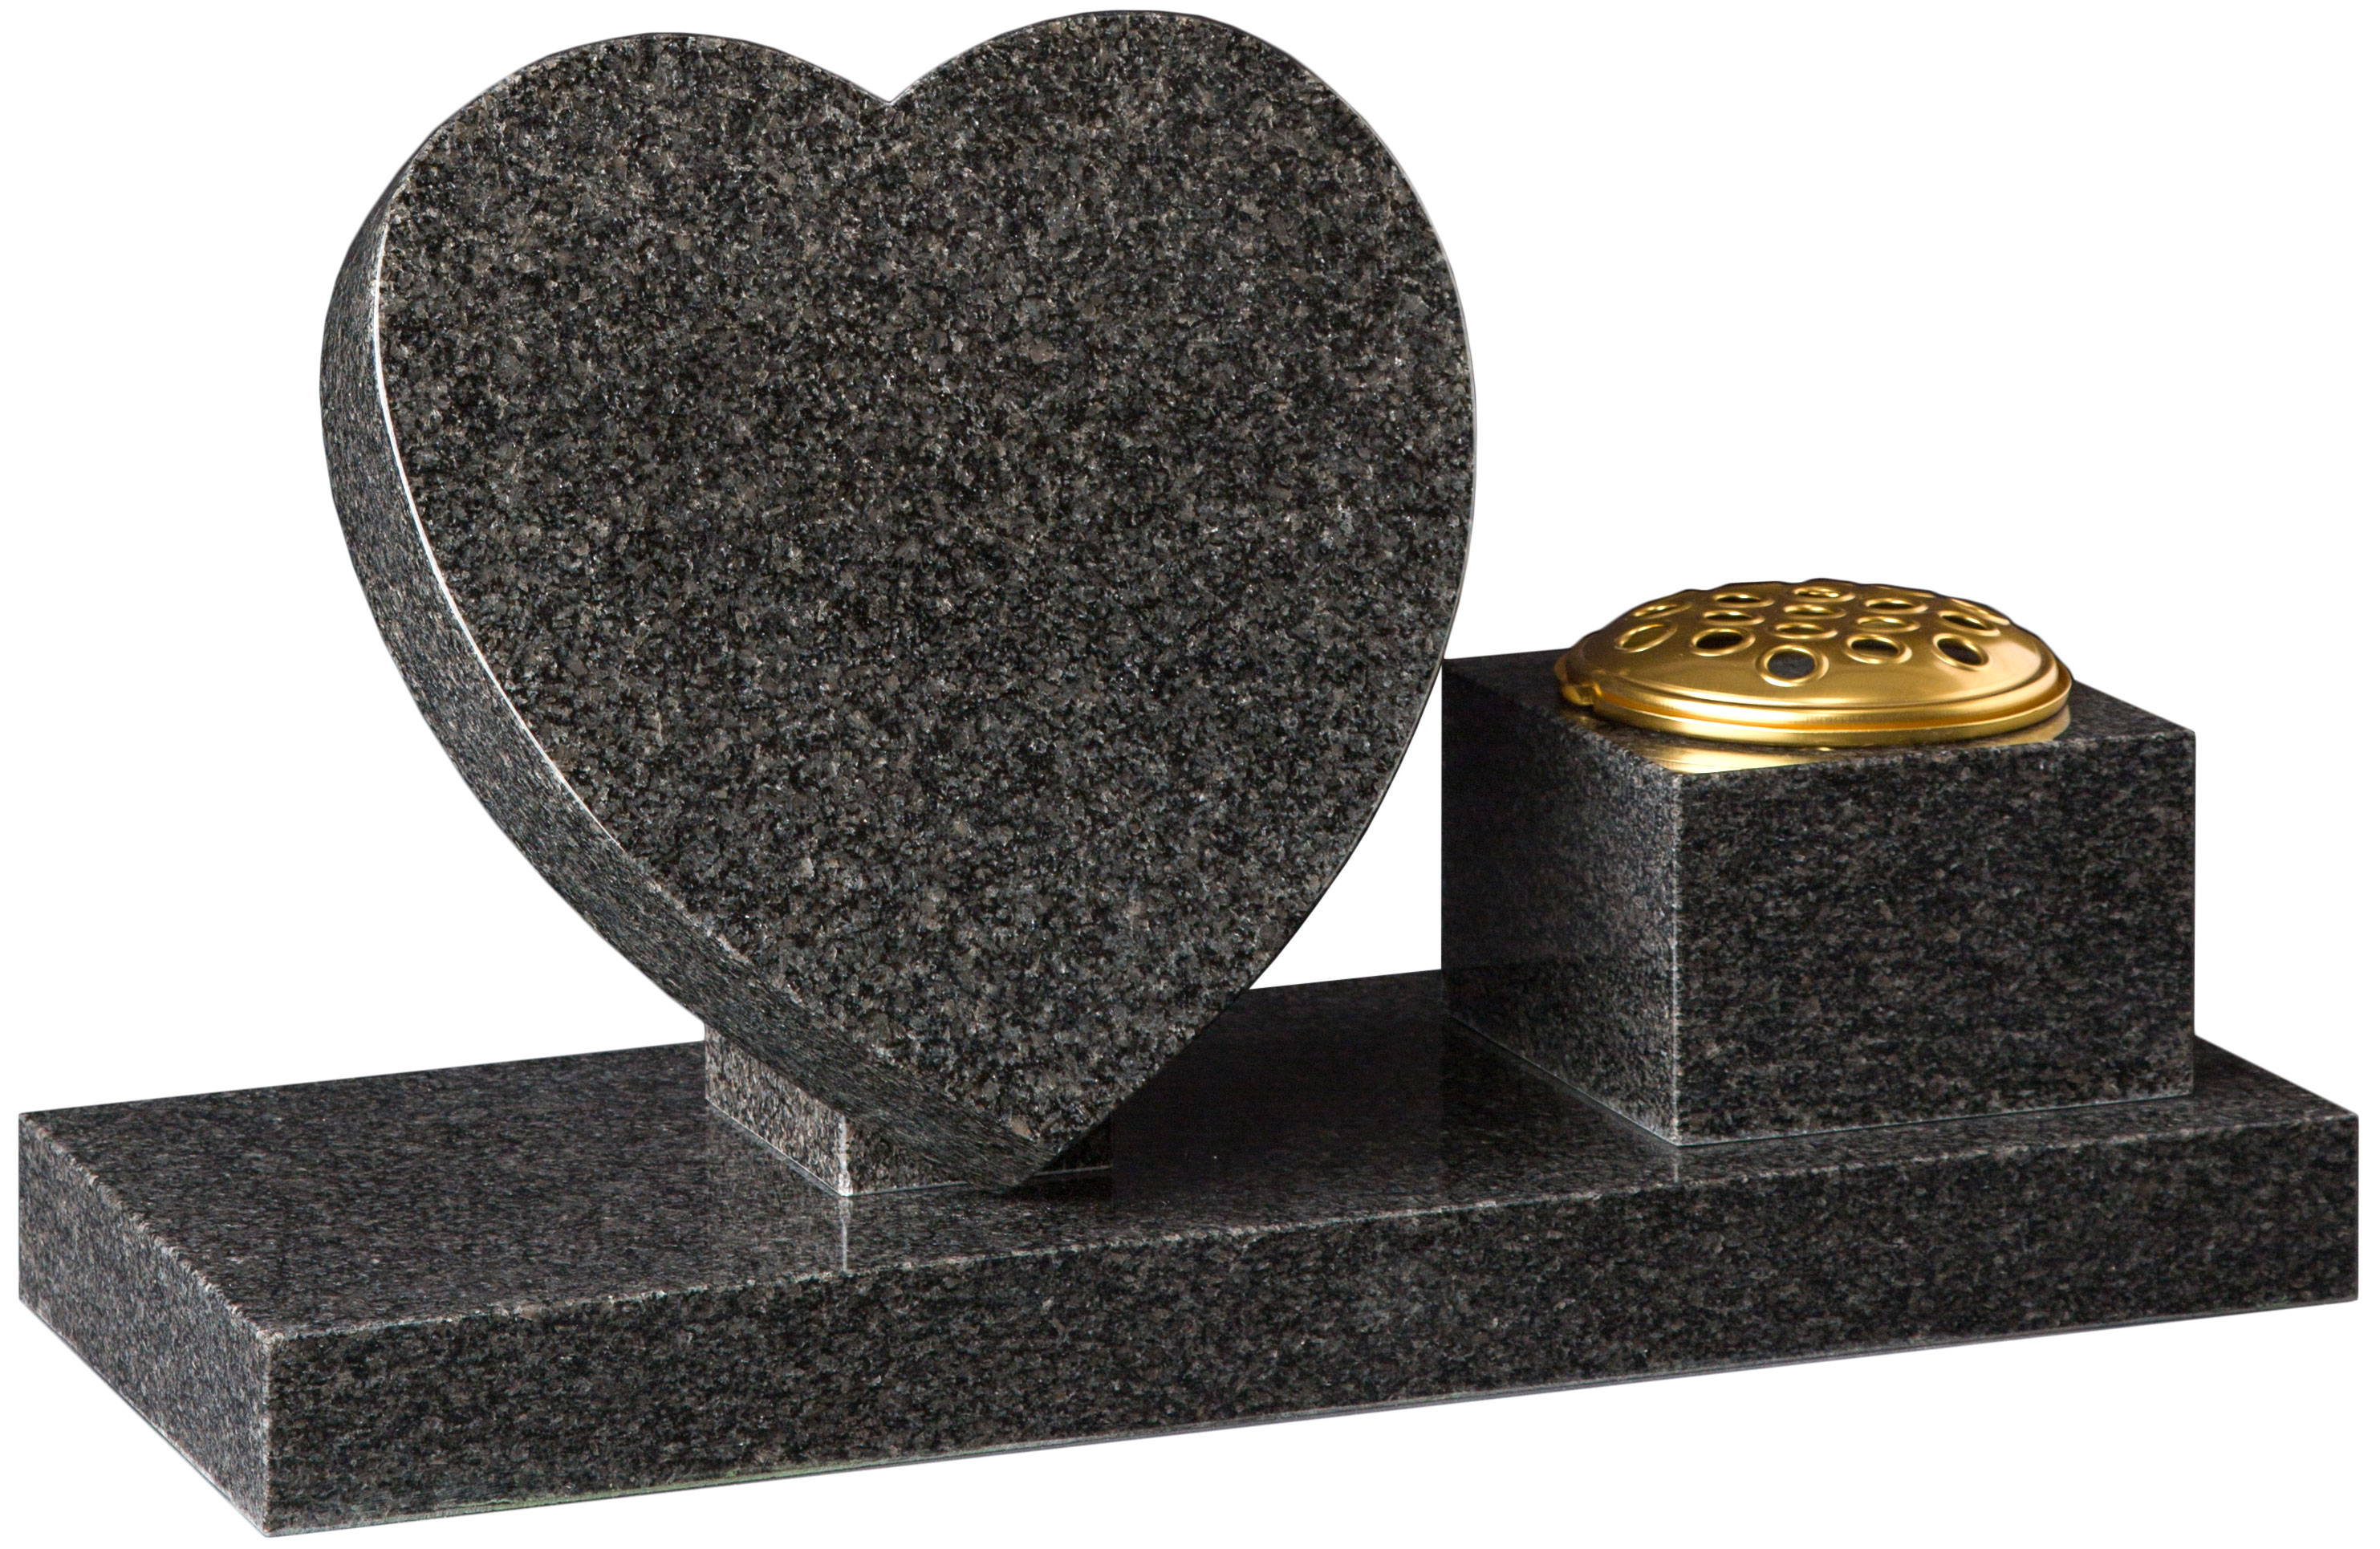 16201 Heart Tablet and vase